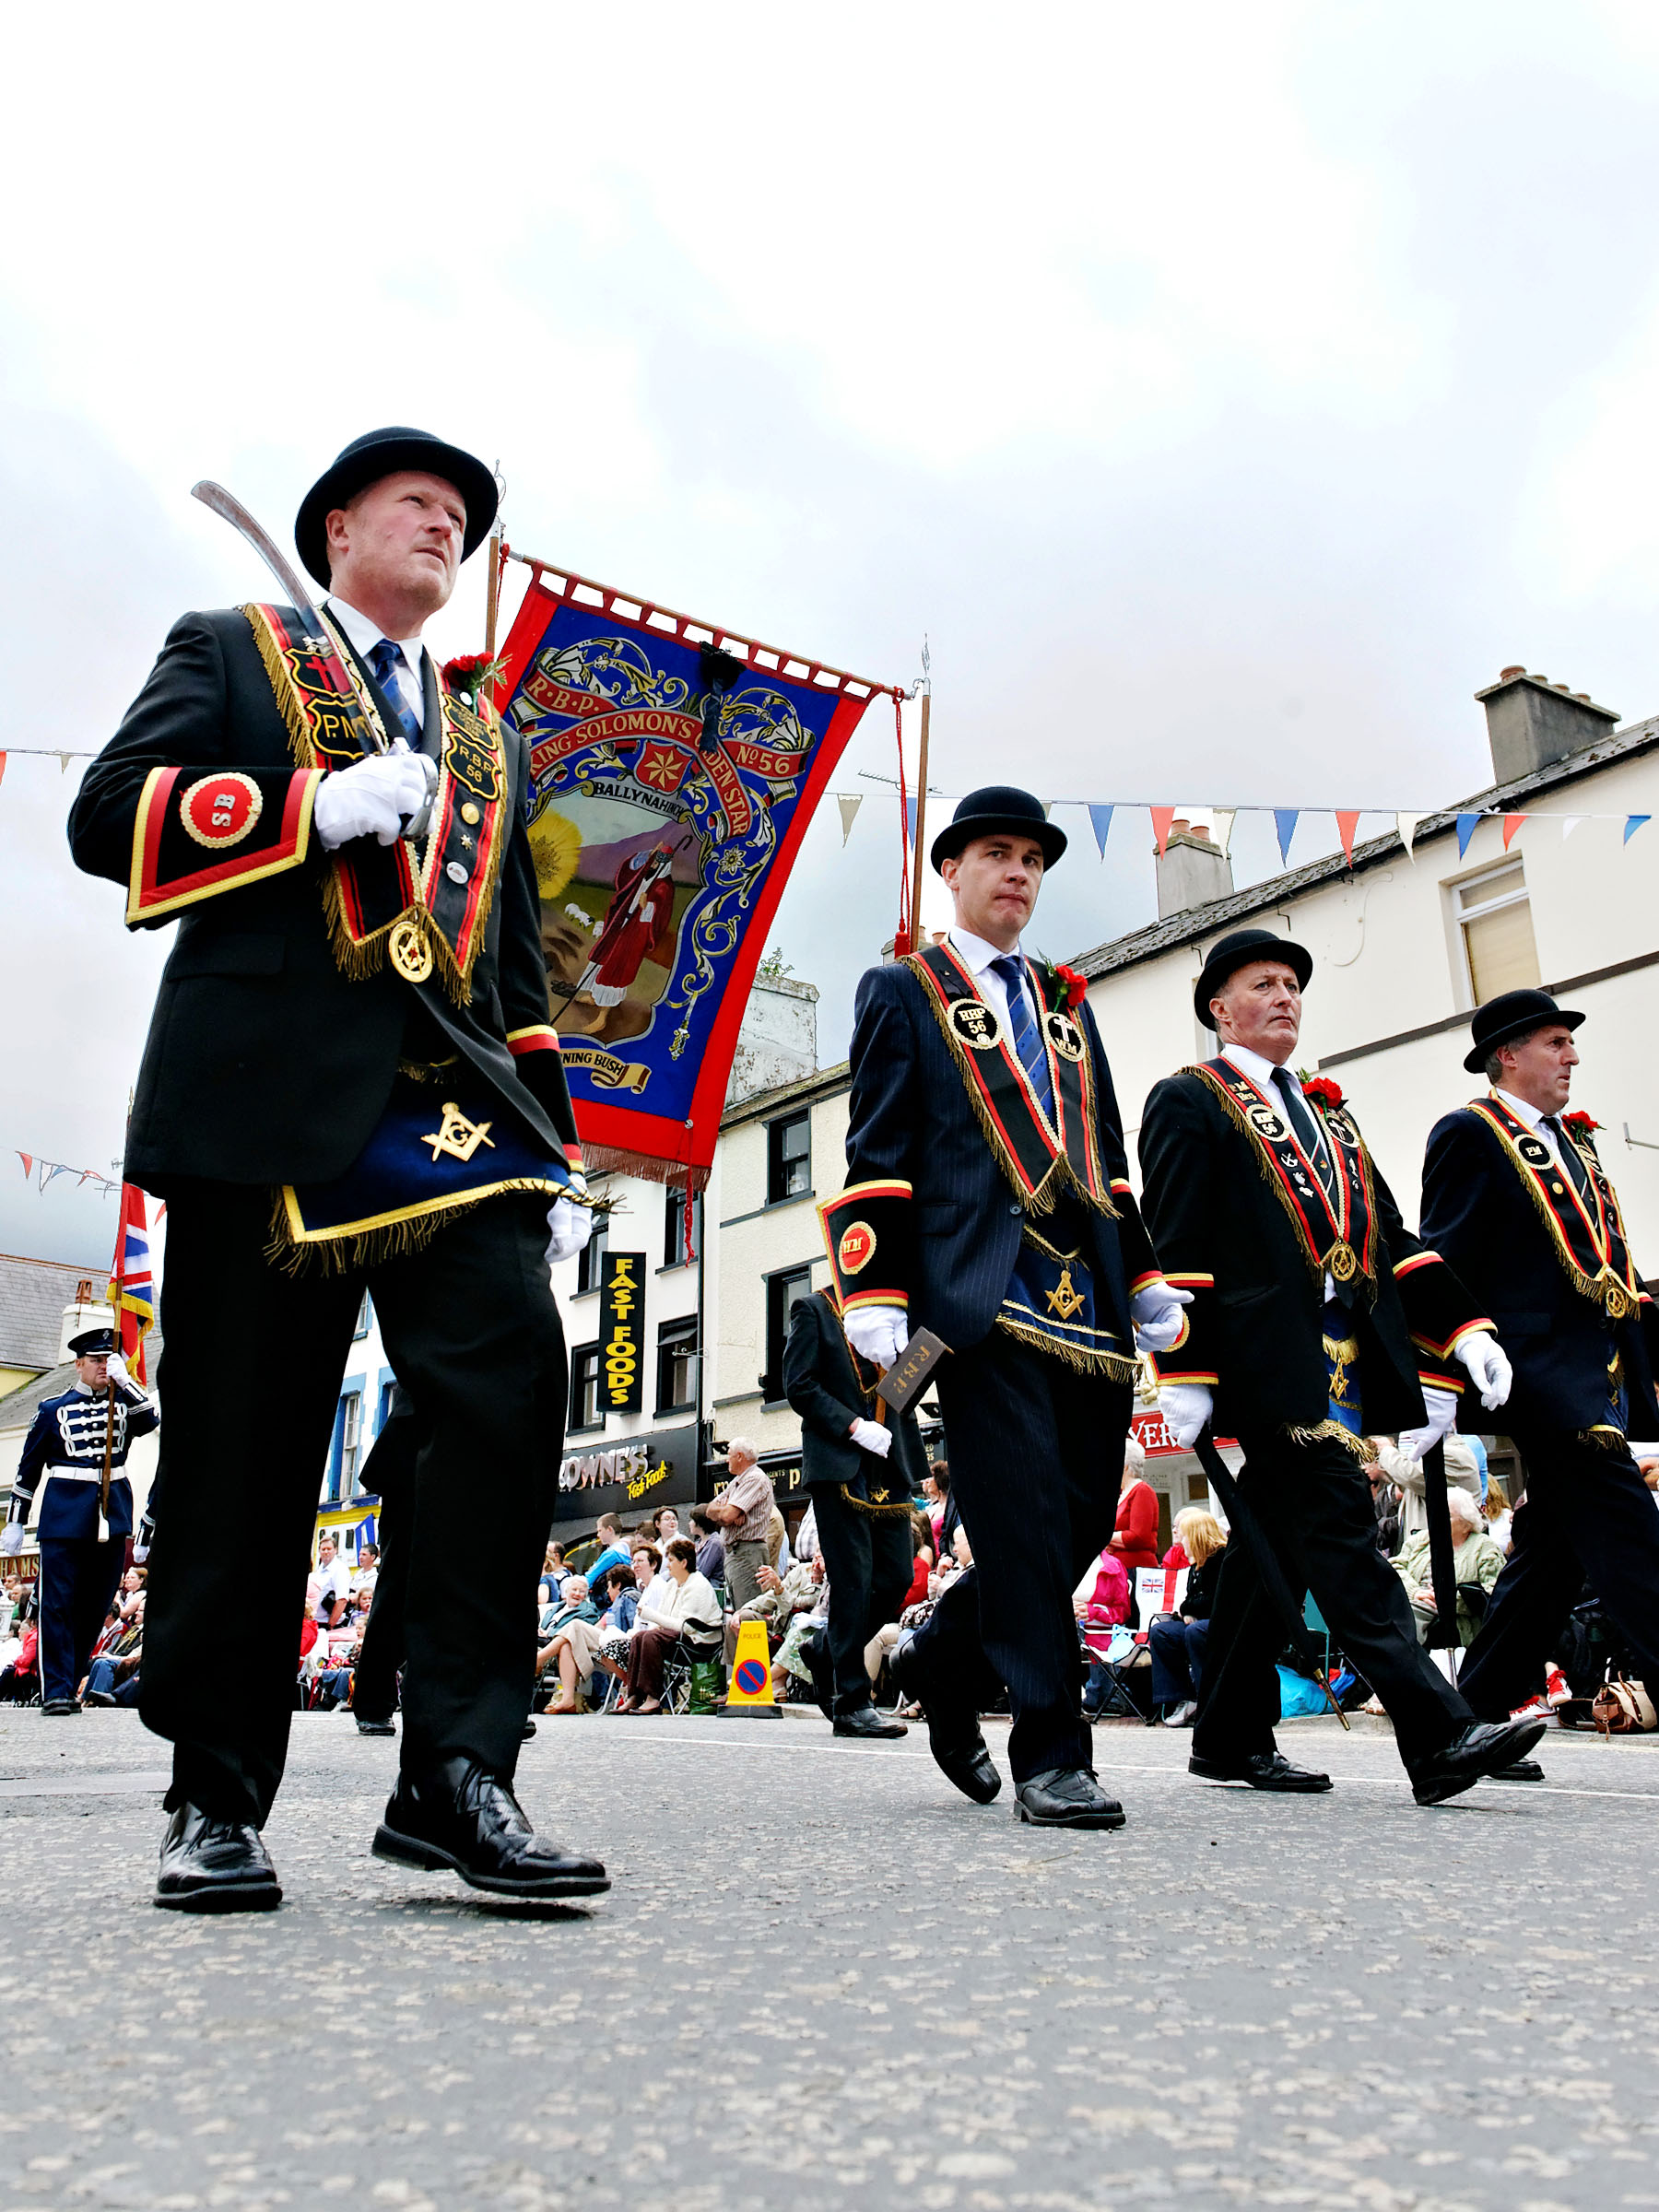 Office bearers of King Solomon's Golden Star RBP 56 (Ballynahinch) make their way through Dromore to the Black Saturday demonstration field.